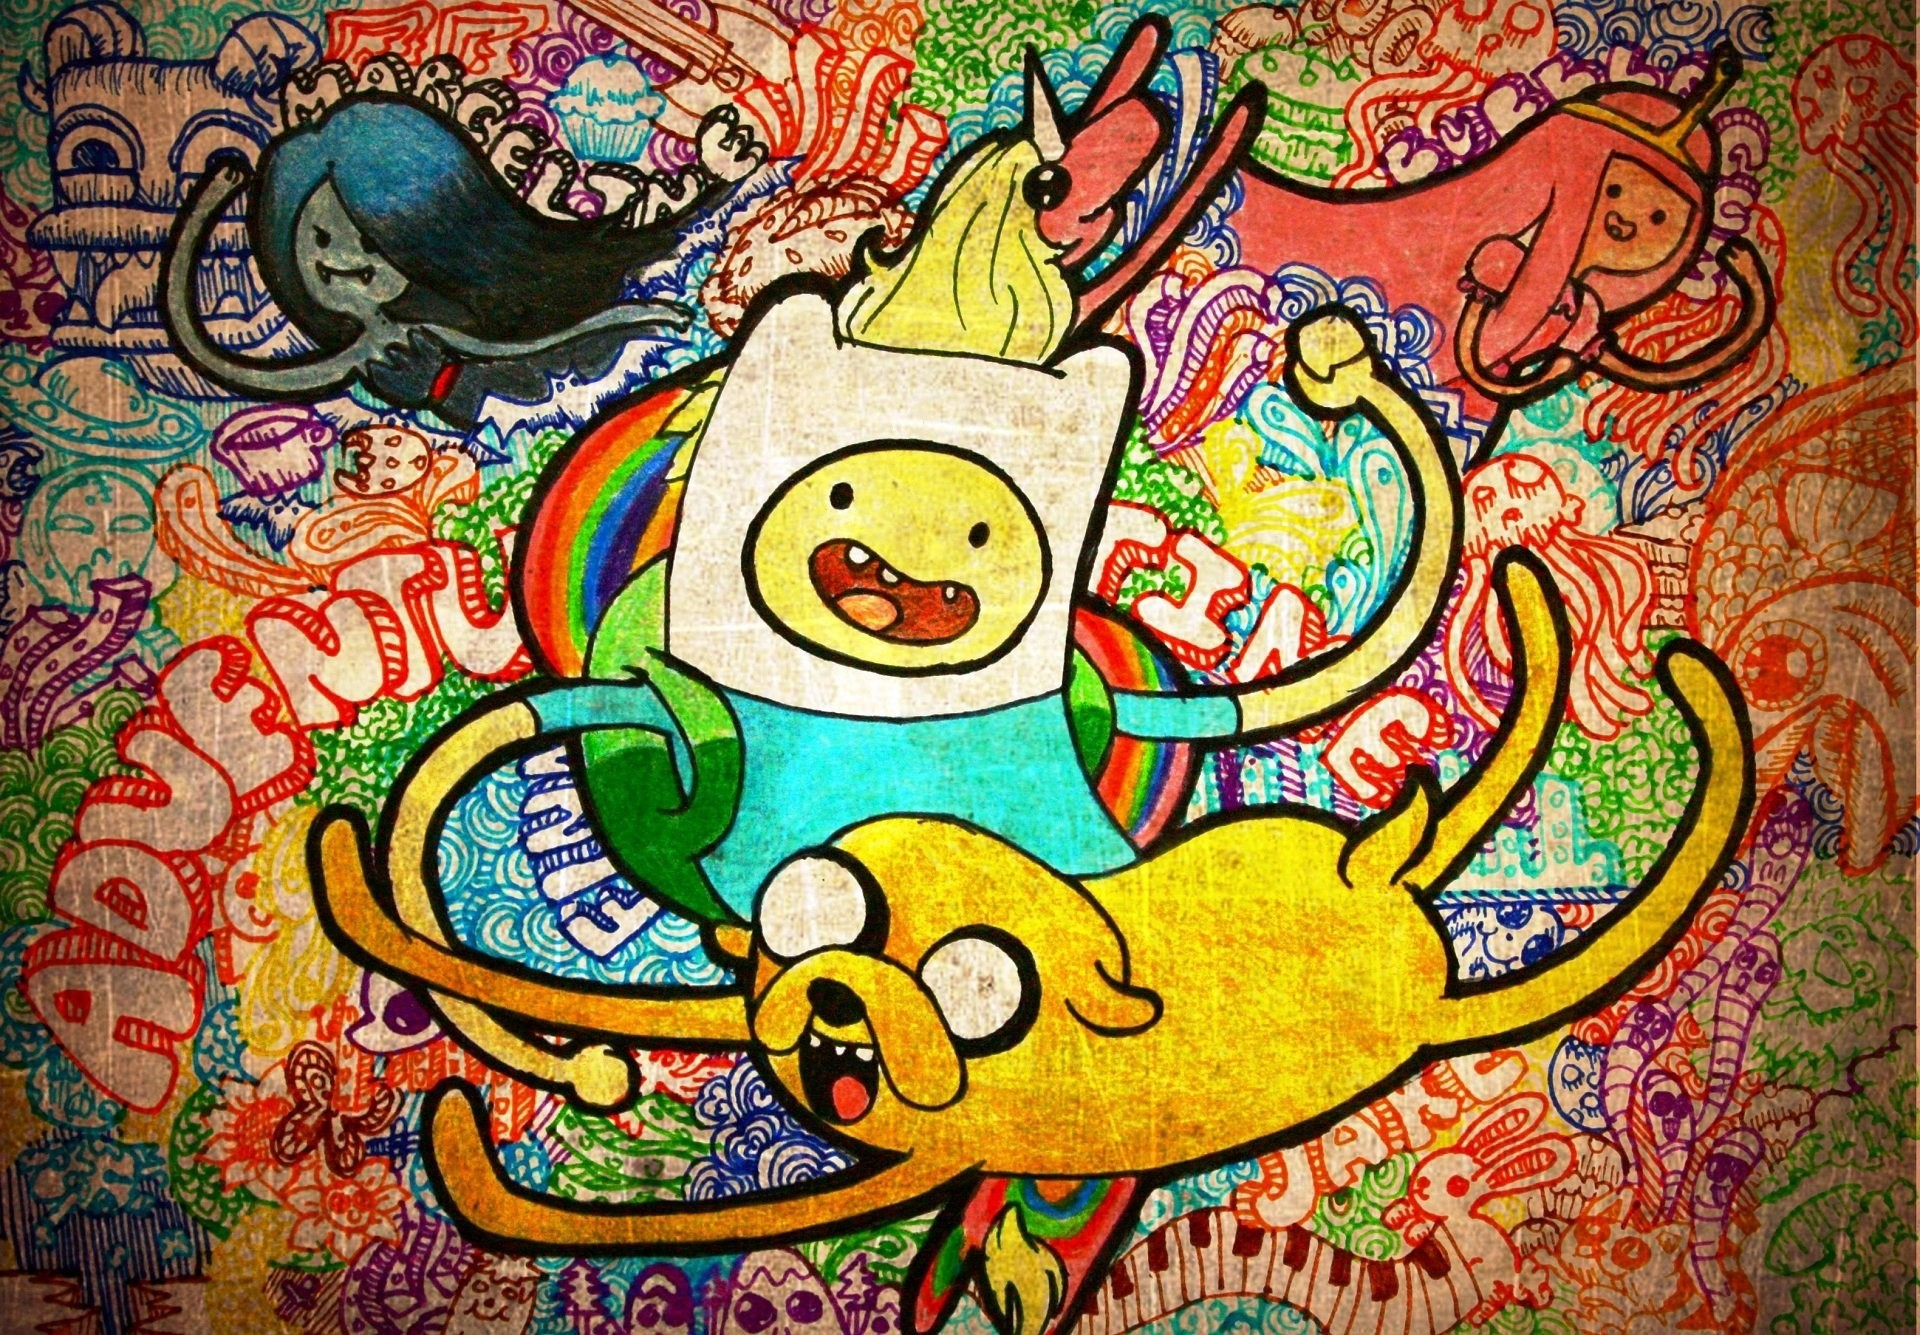 1920x1080 Adventure Time Wallpapers HD Wallpaper · Download · 1920x1335 HD Wallpaper | Background Image ID:205153